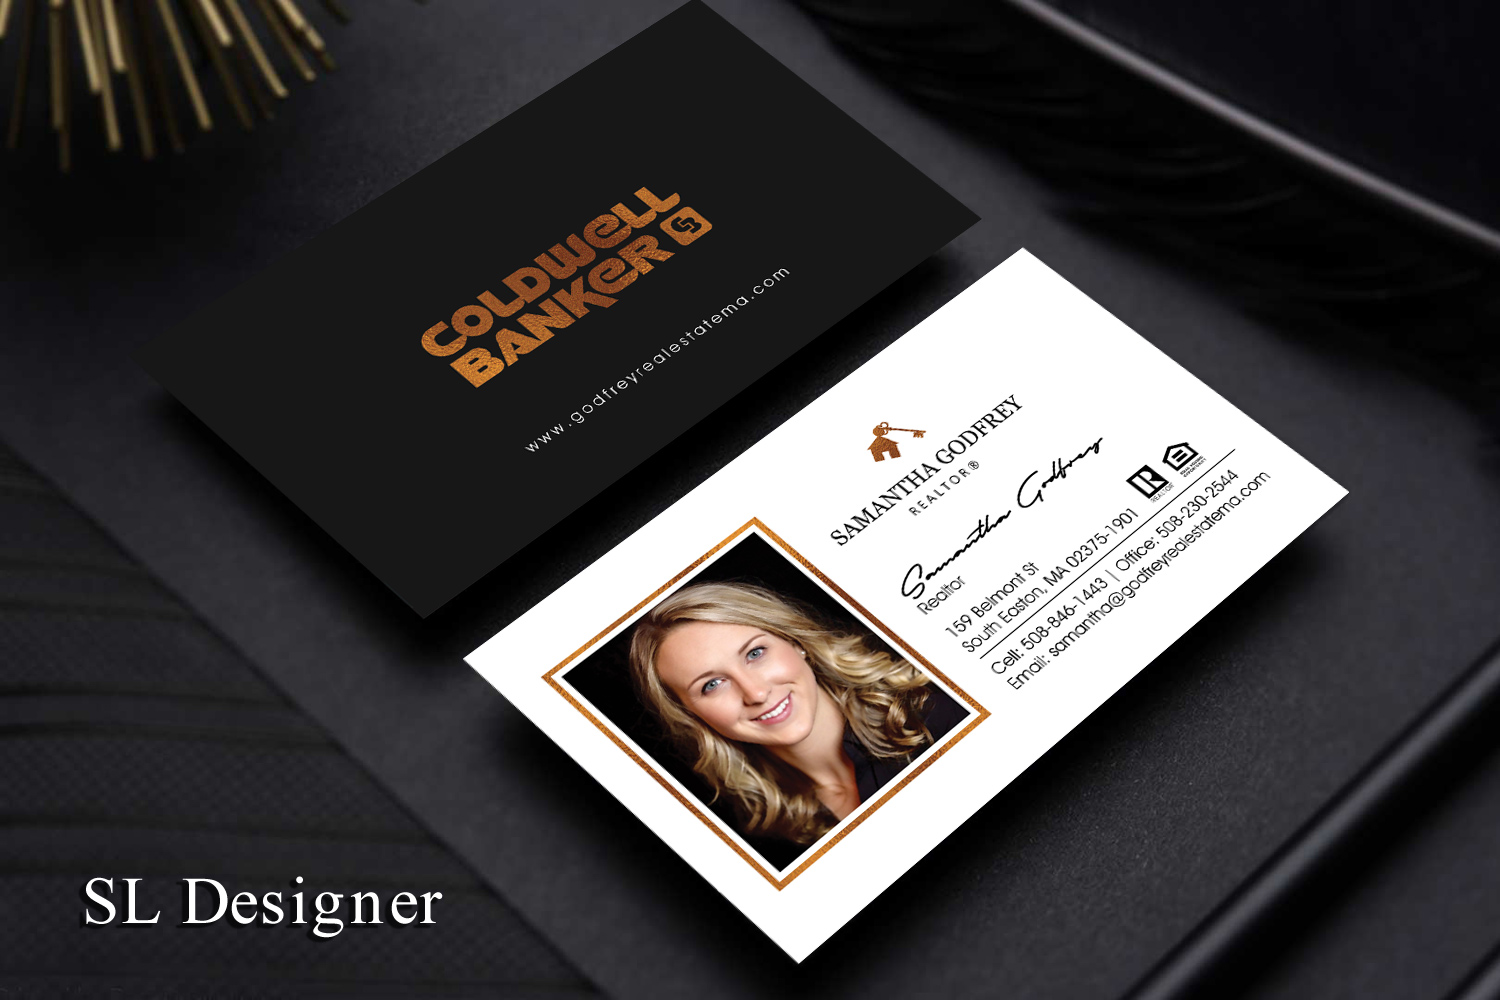 Modern professional real estate agent business card design for business card design by sl designer for godfrey auto inc design 17841376 reheart Gallery